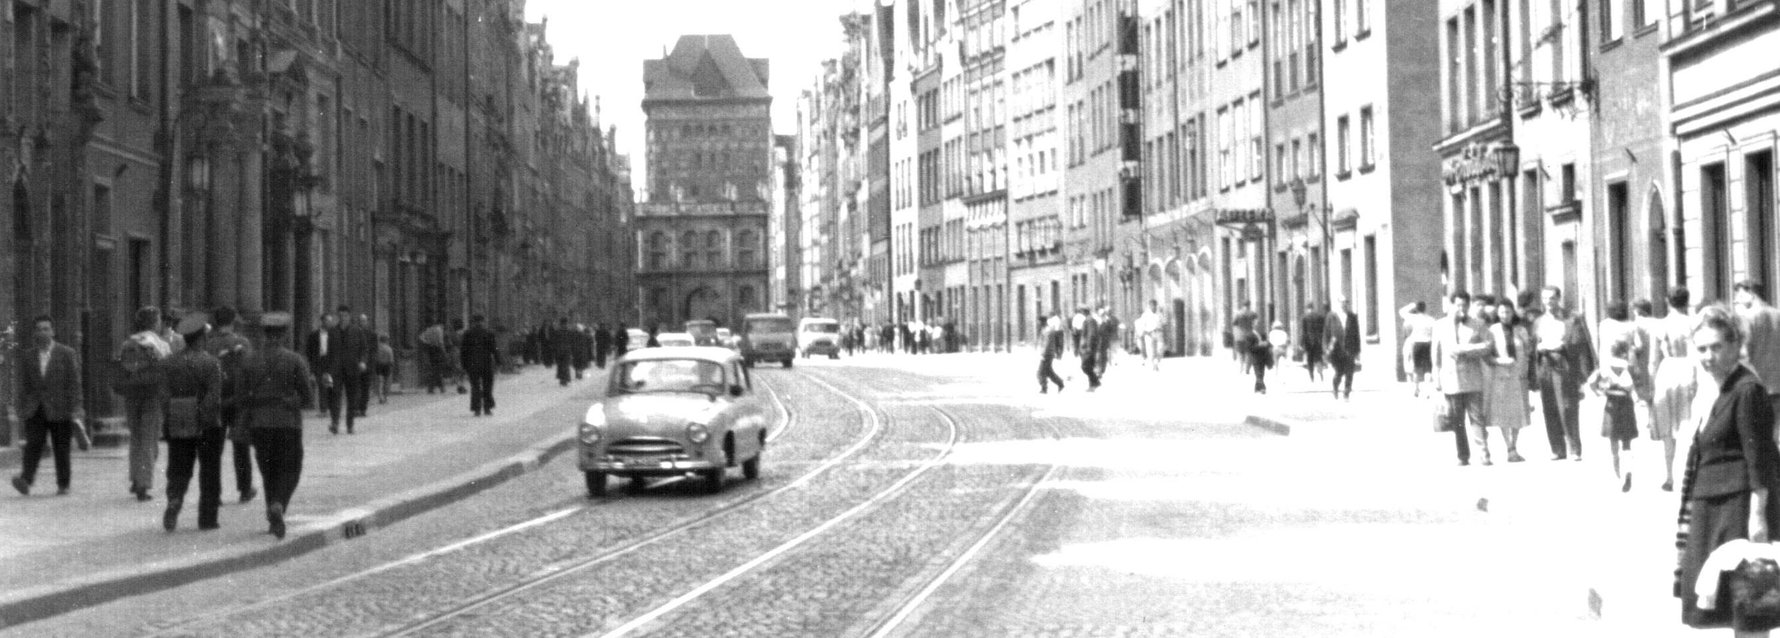 Gdańsk - 1960 Photo by Dr. Elekes Andor, Metapolisz Images